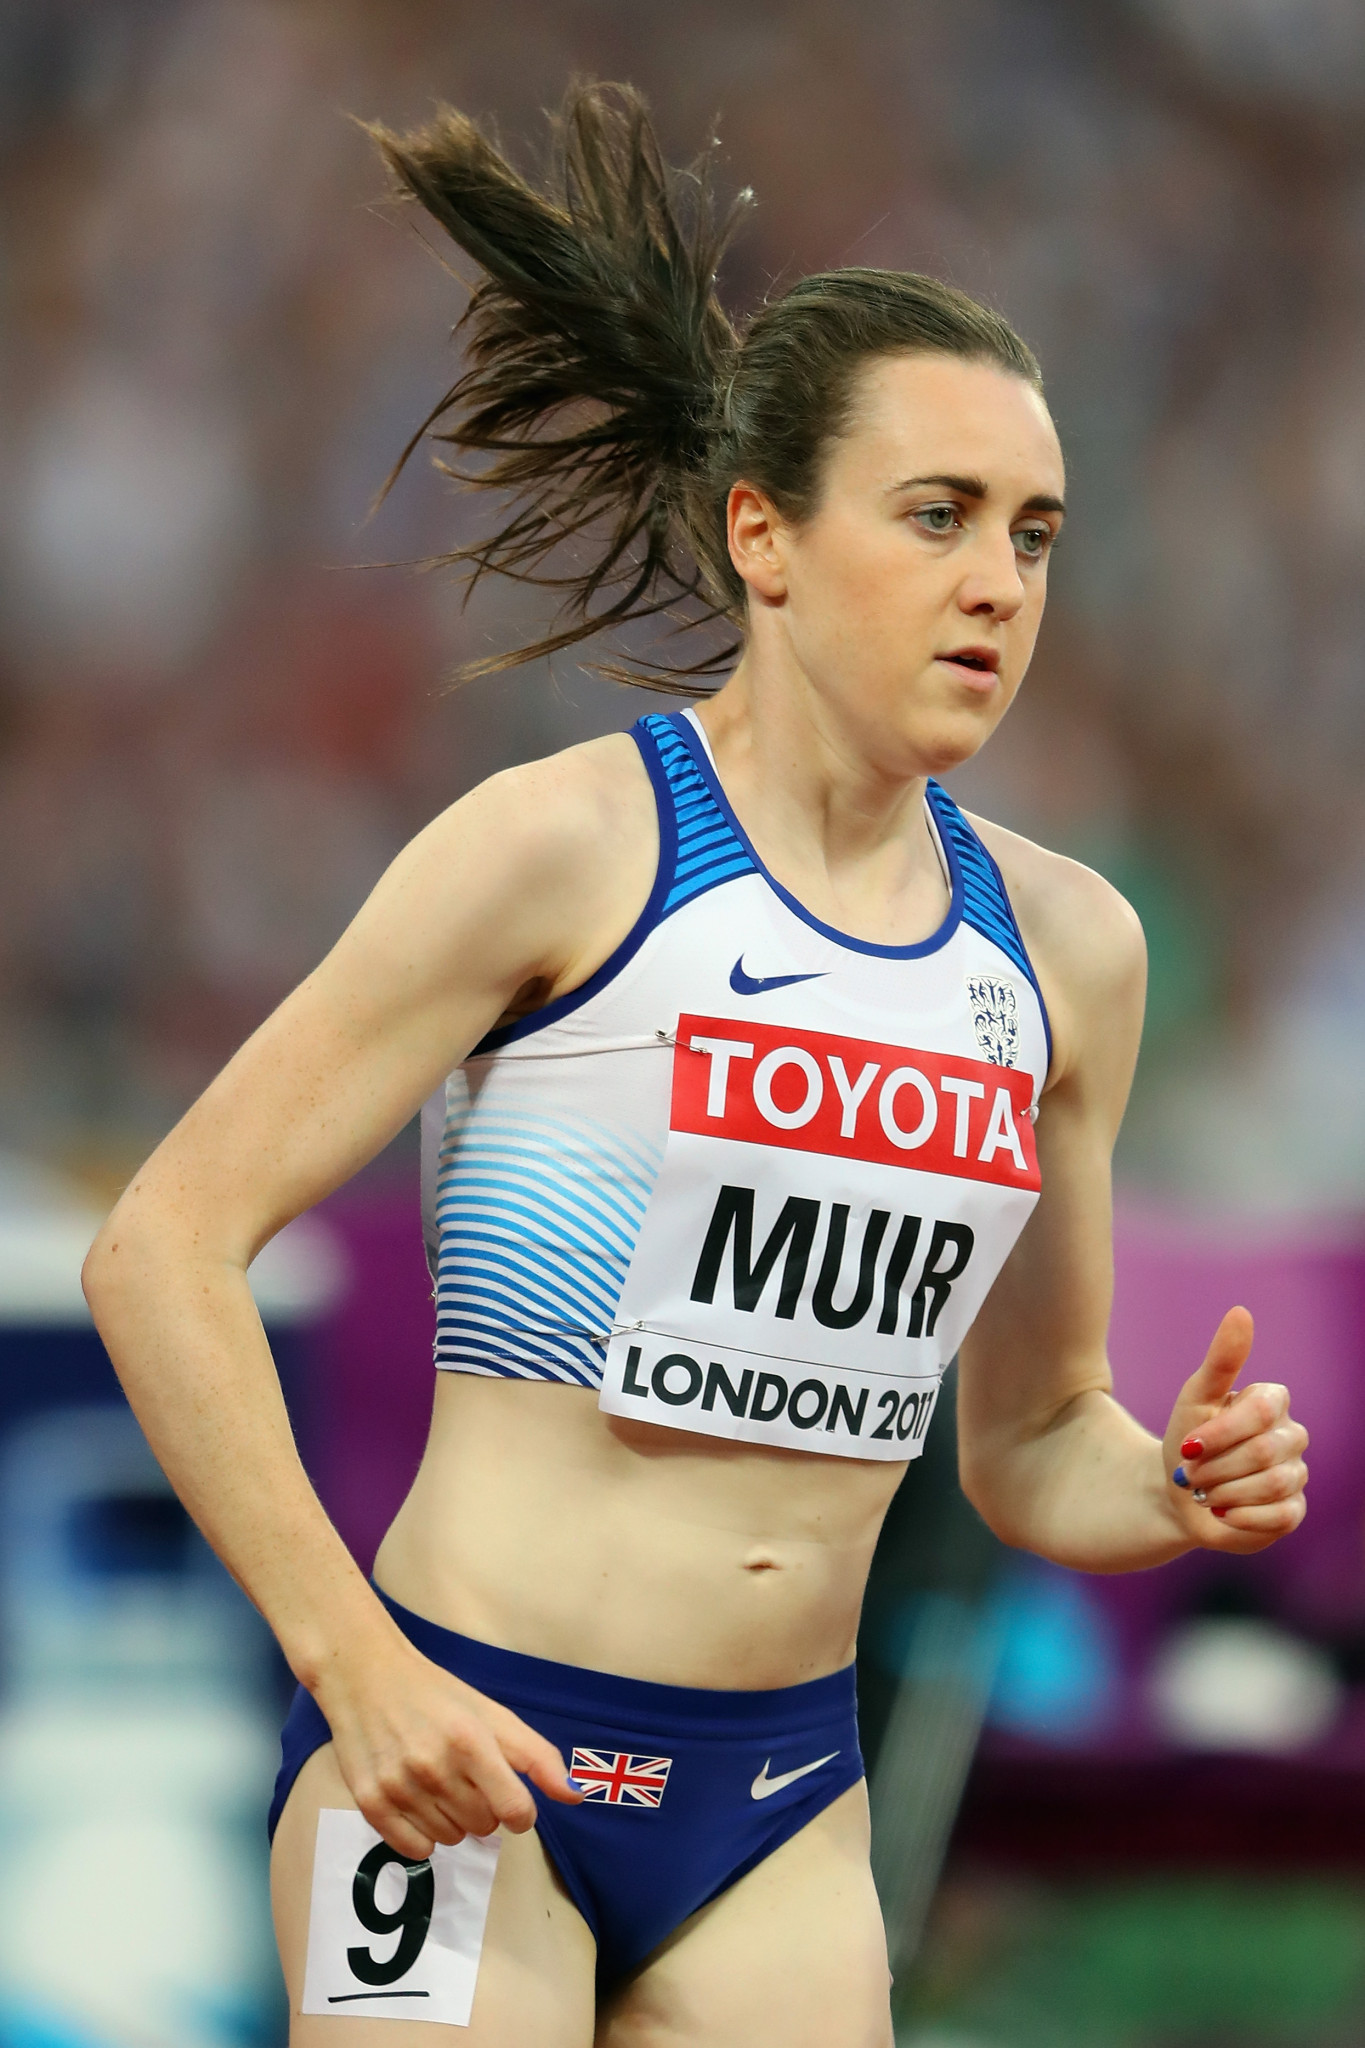 Home fans look to Muir during London's IAAF Diamond League weekend